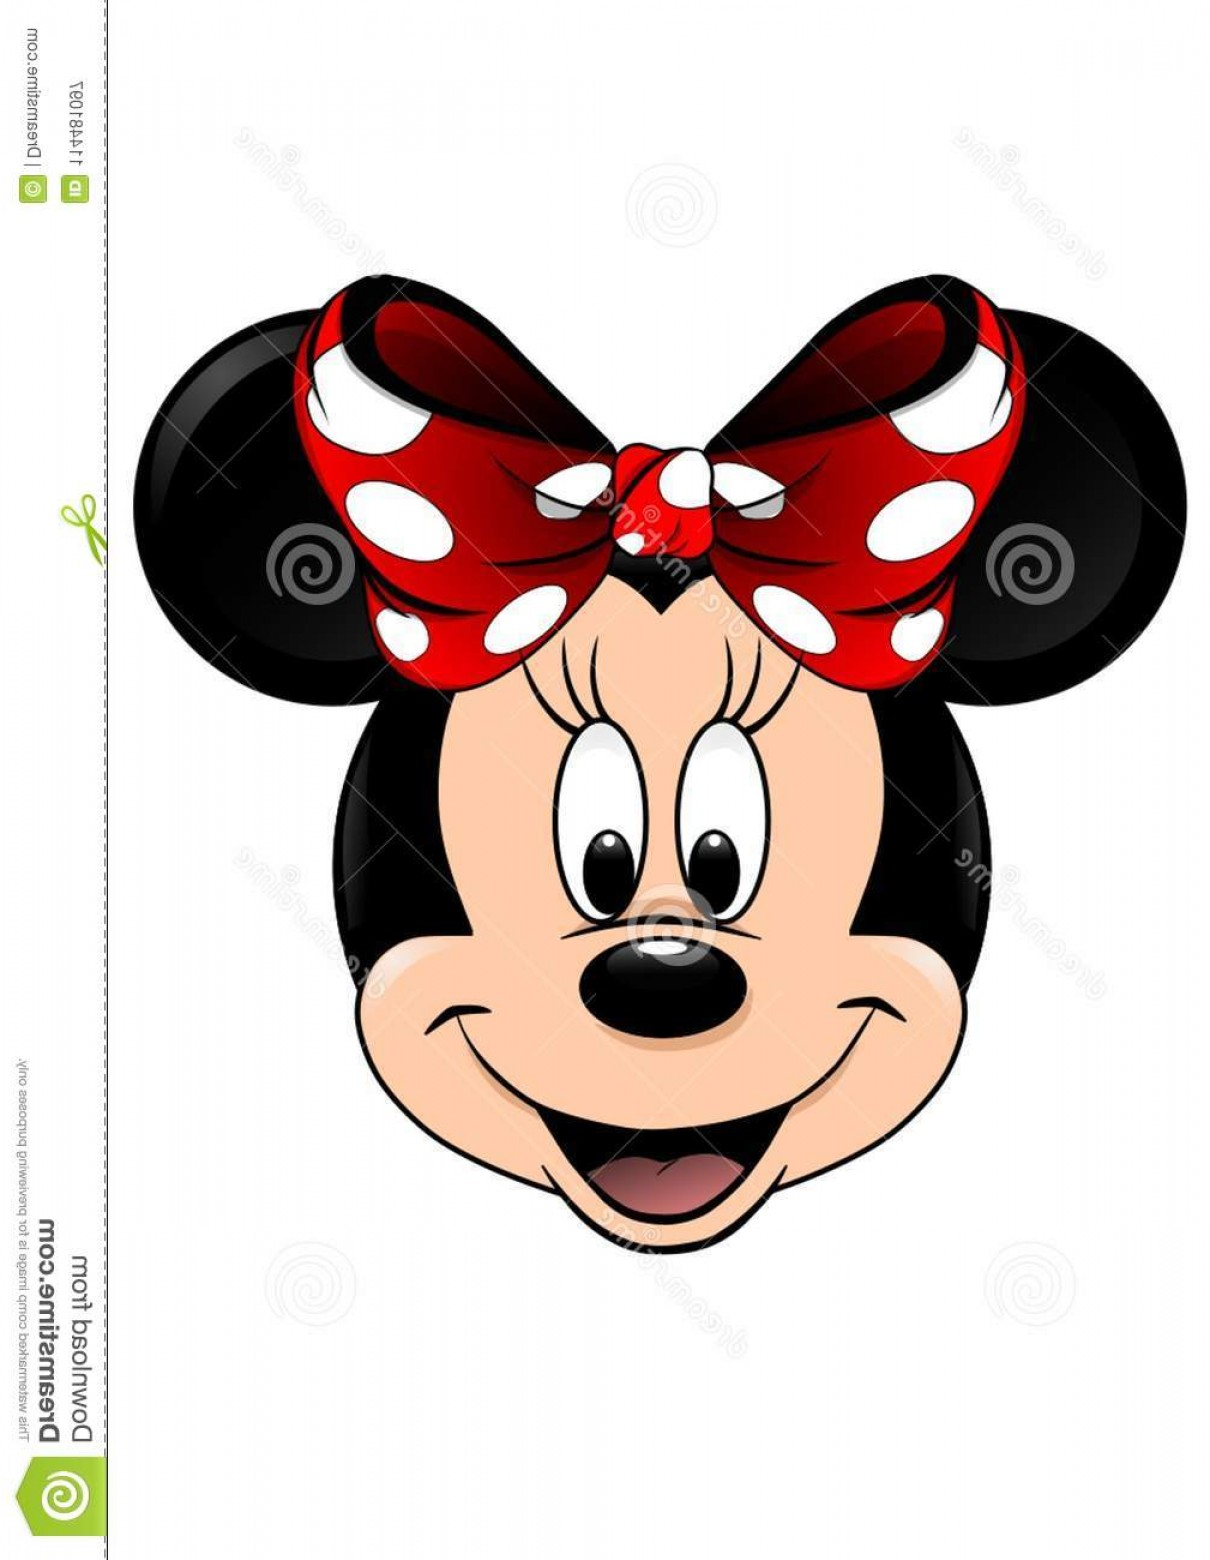 Minnie Vector Black And White: Minnie Mouse Vector Face Isolated White Background Closeup Colored Disney Character Who Smiles Big Eyes Black Round Image